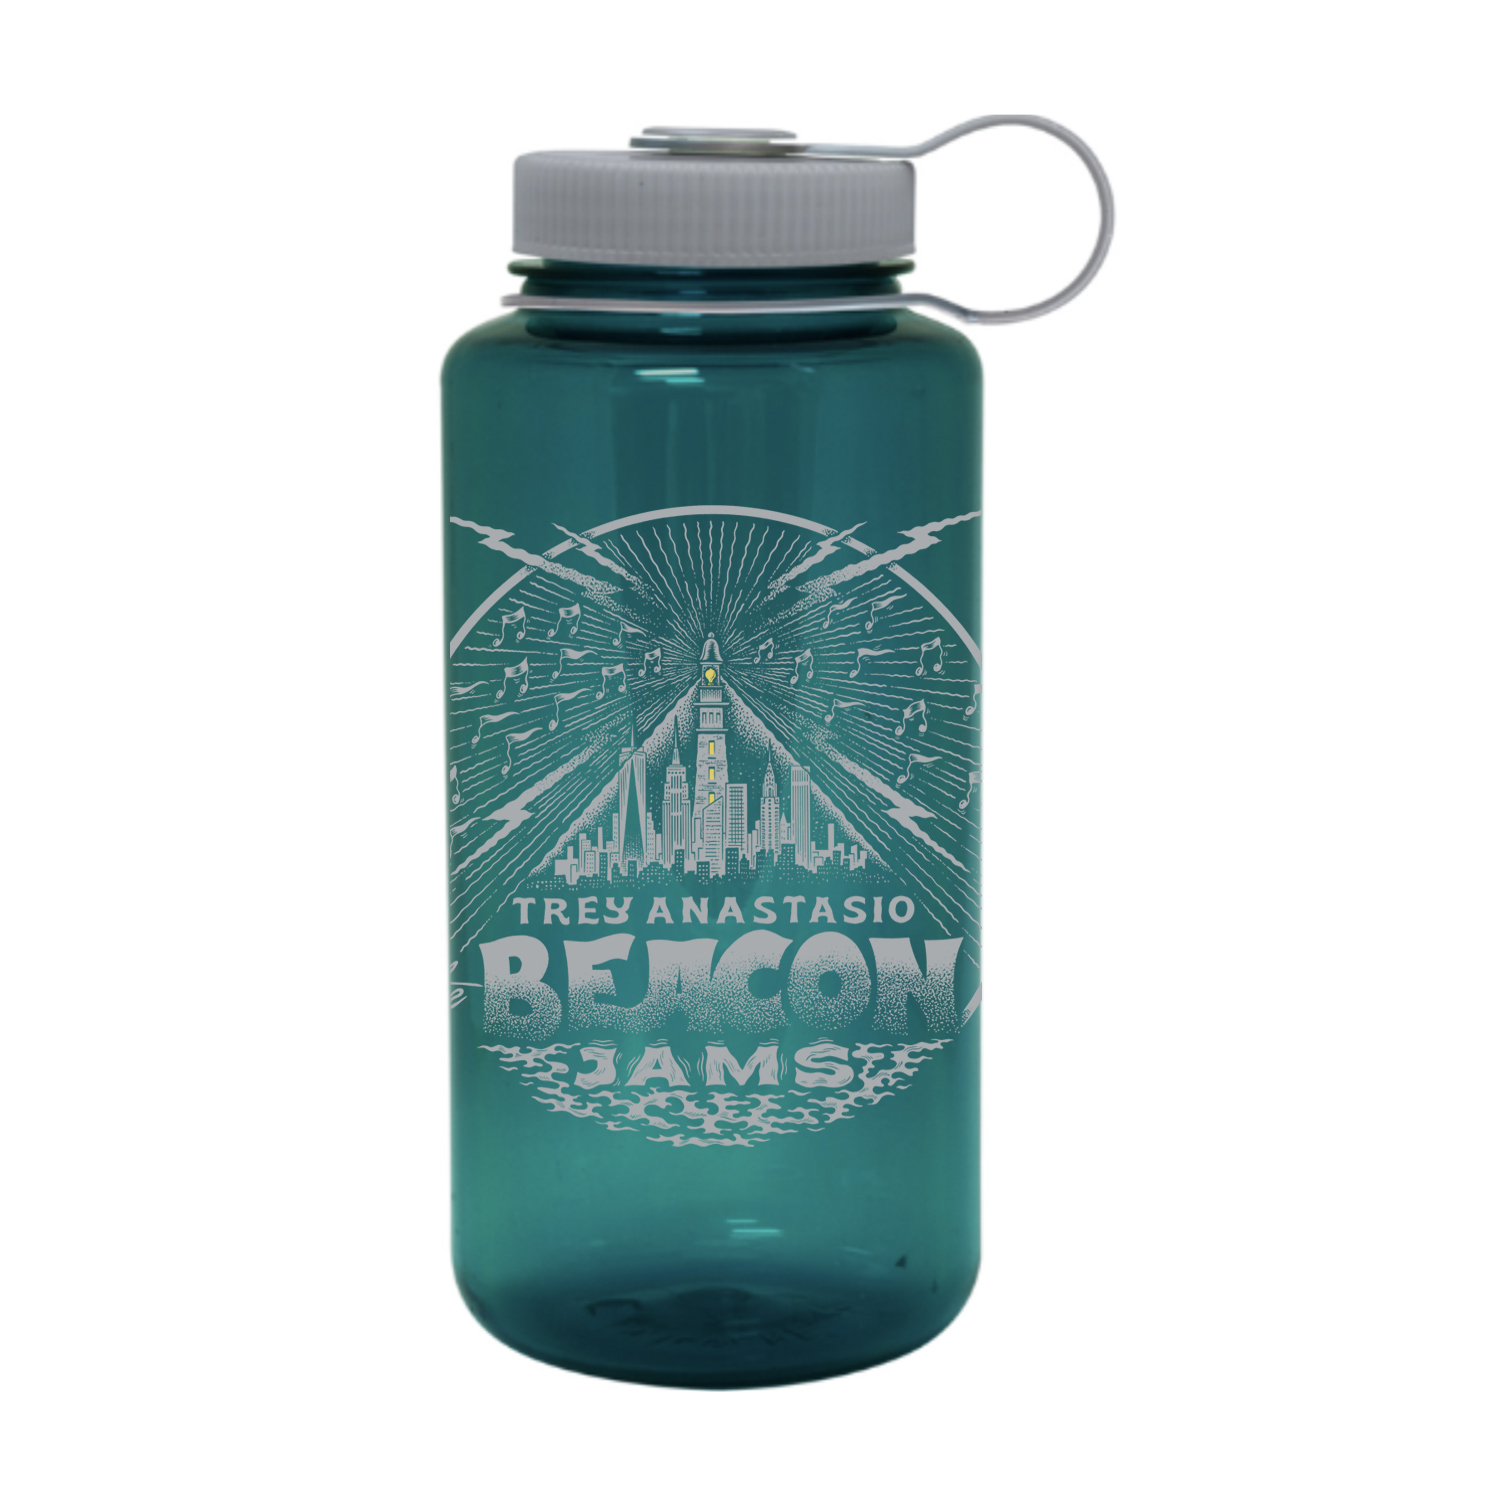 Trey Anastasio The Beacon Jams Nalgene